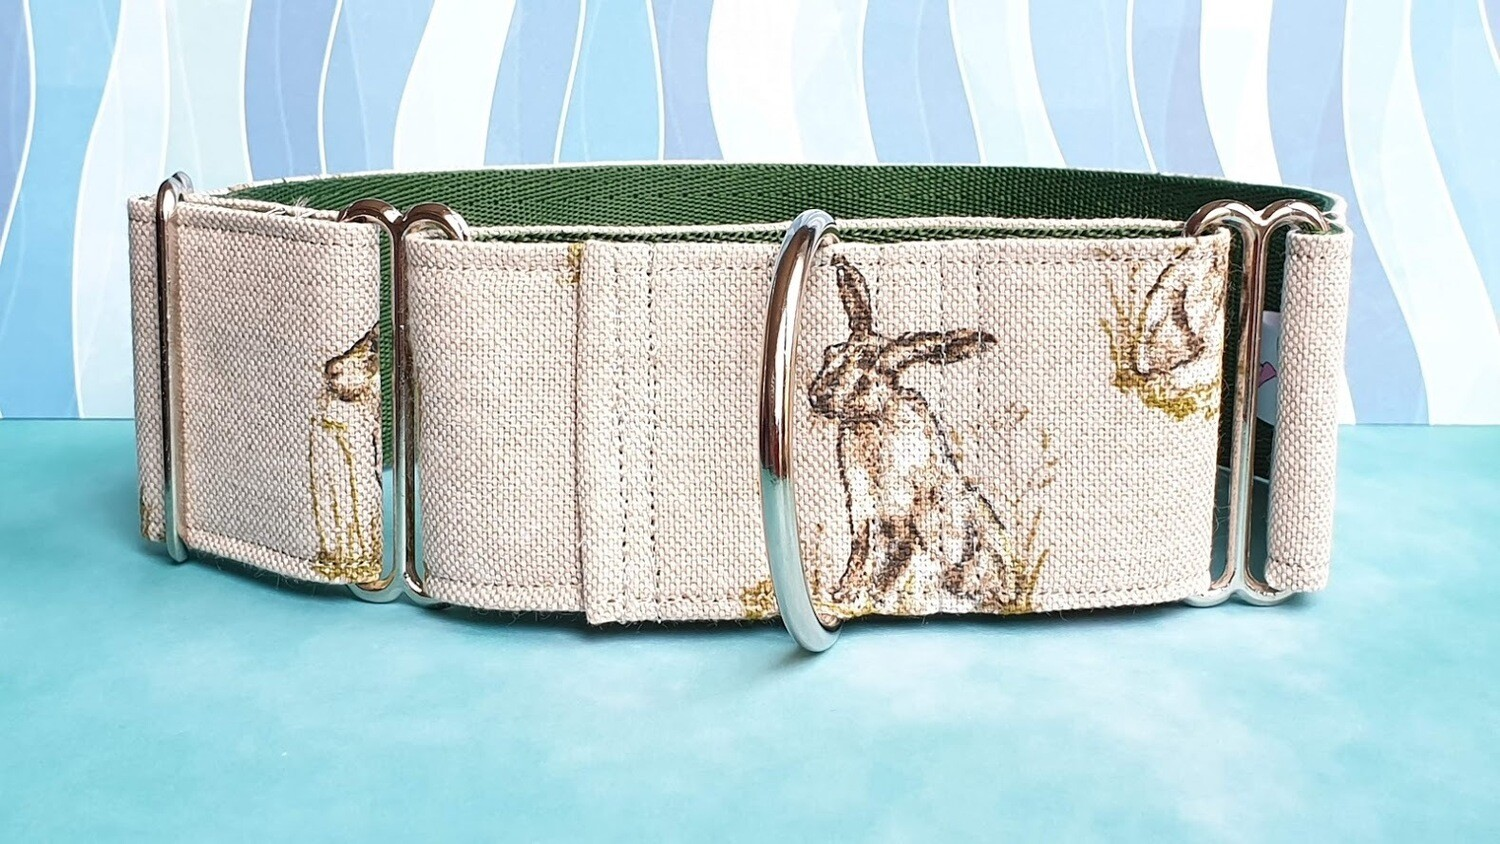 Collar 'Bunnies' Martingale, House or Clip Showing Sketched Rabbits